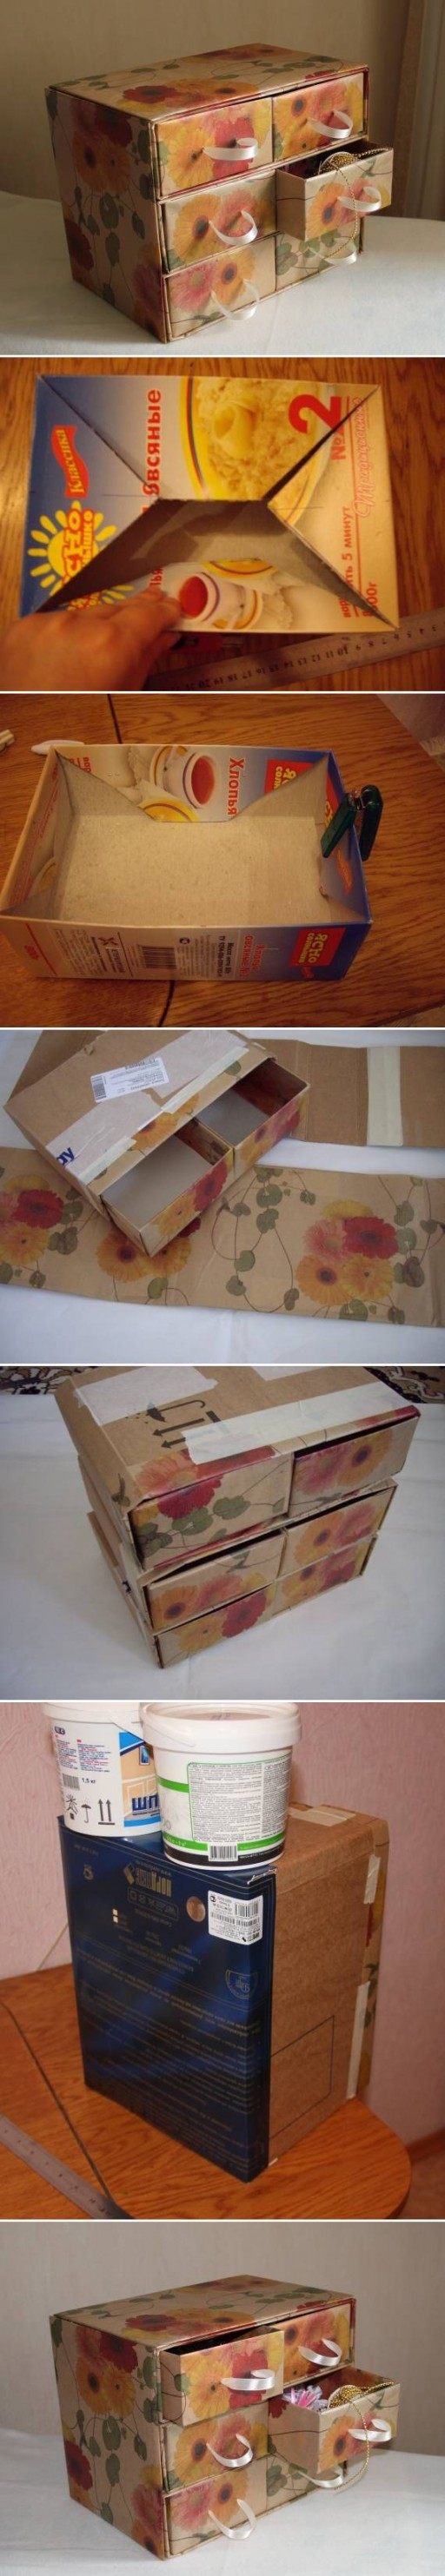 How To Make Cardboard chest with storage container units step by step DIY tutorial instructions